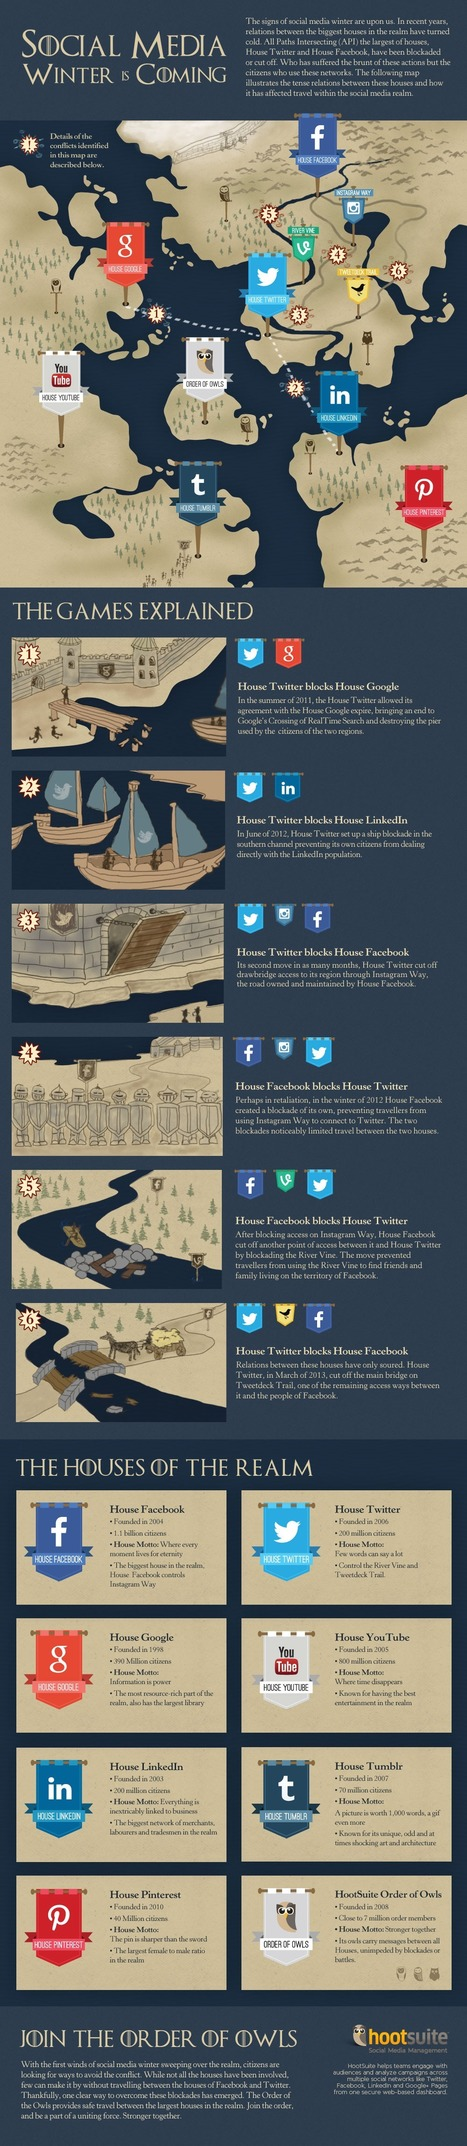 Social Media Wars Told in 'Game of Thrones' Style [INFOGRAPHIC] | Transmedia + Storyuniverse | Scoop.it